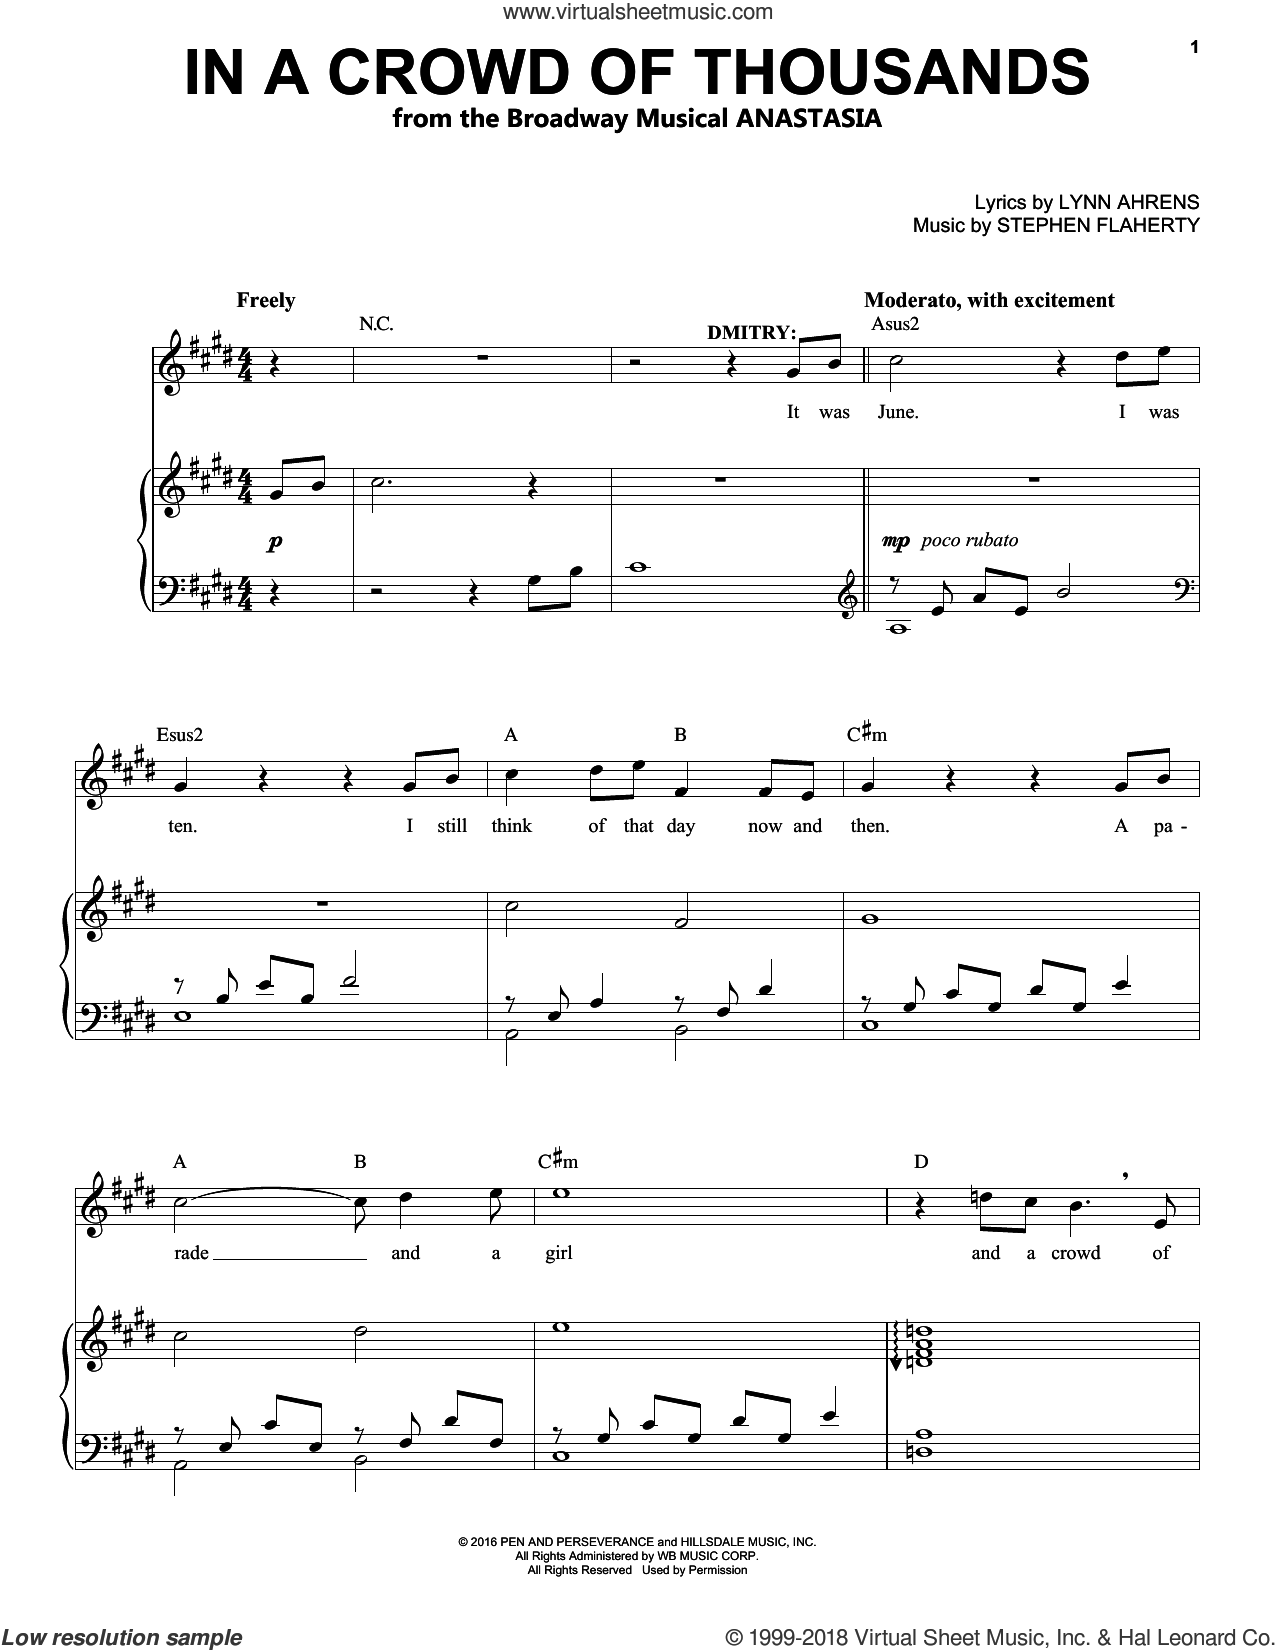 In A Crowd Of Thousands sheet music for voice and piano by Stephen Flaherty and Lynn Ahrens, intermediate skill level